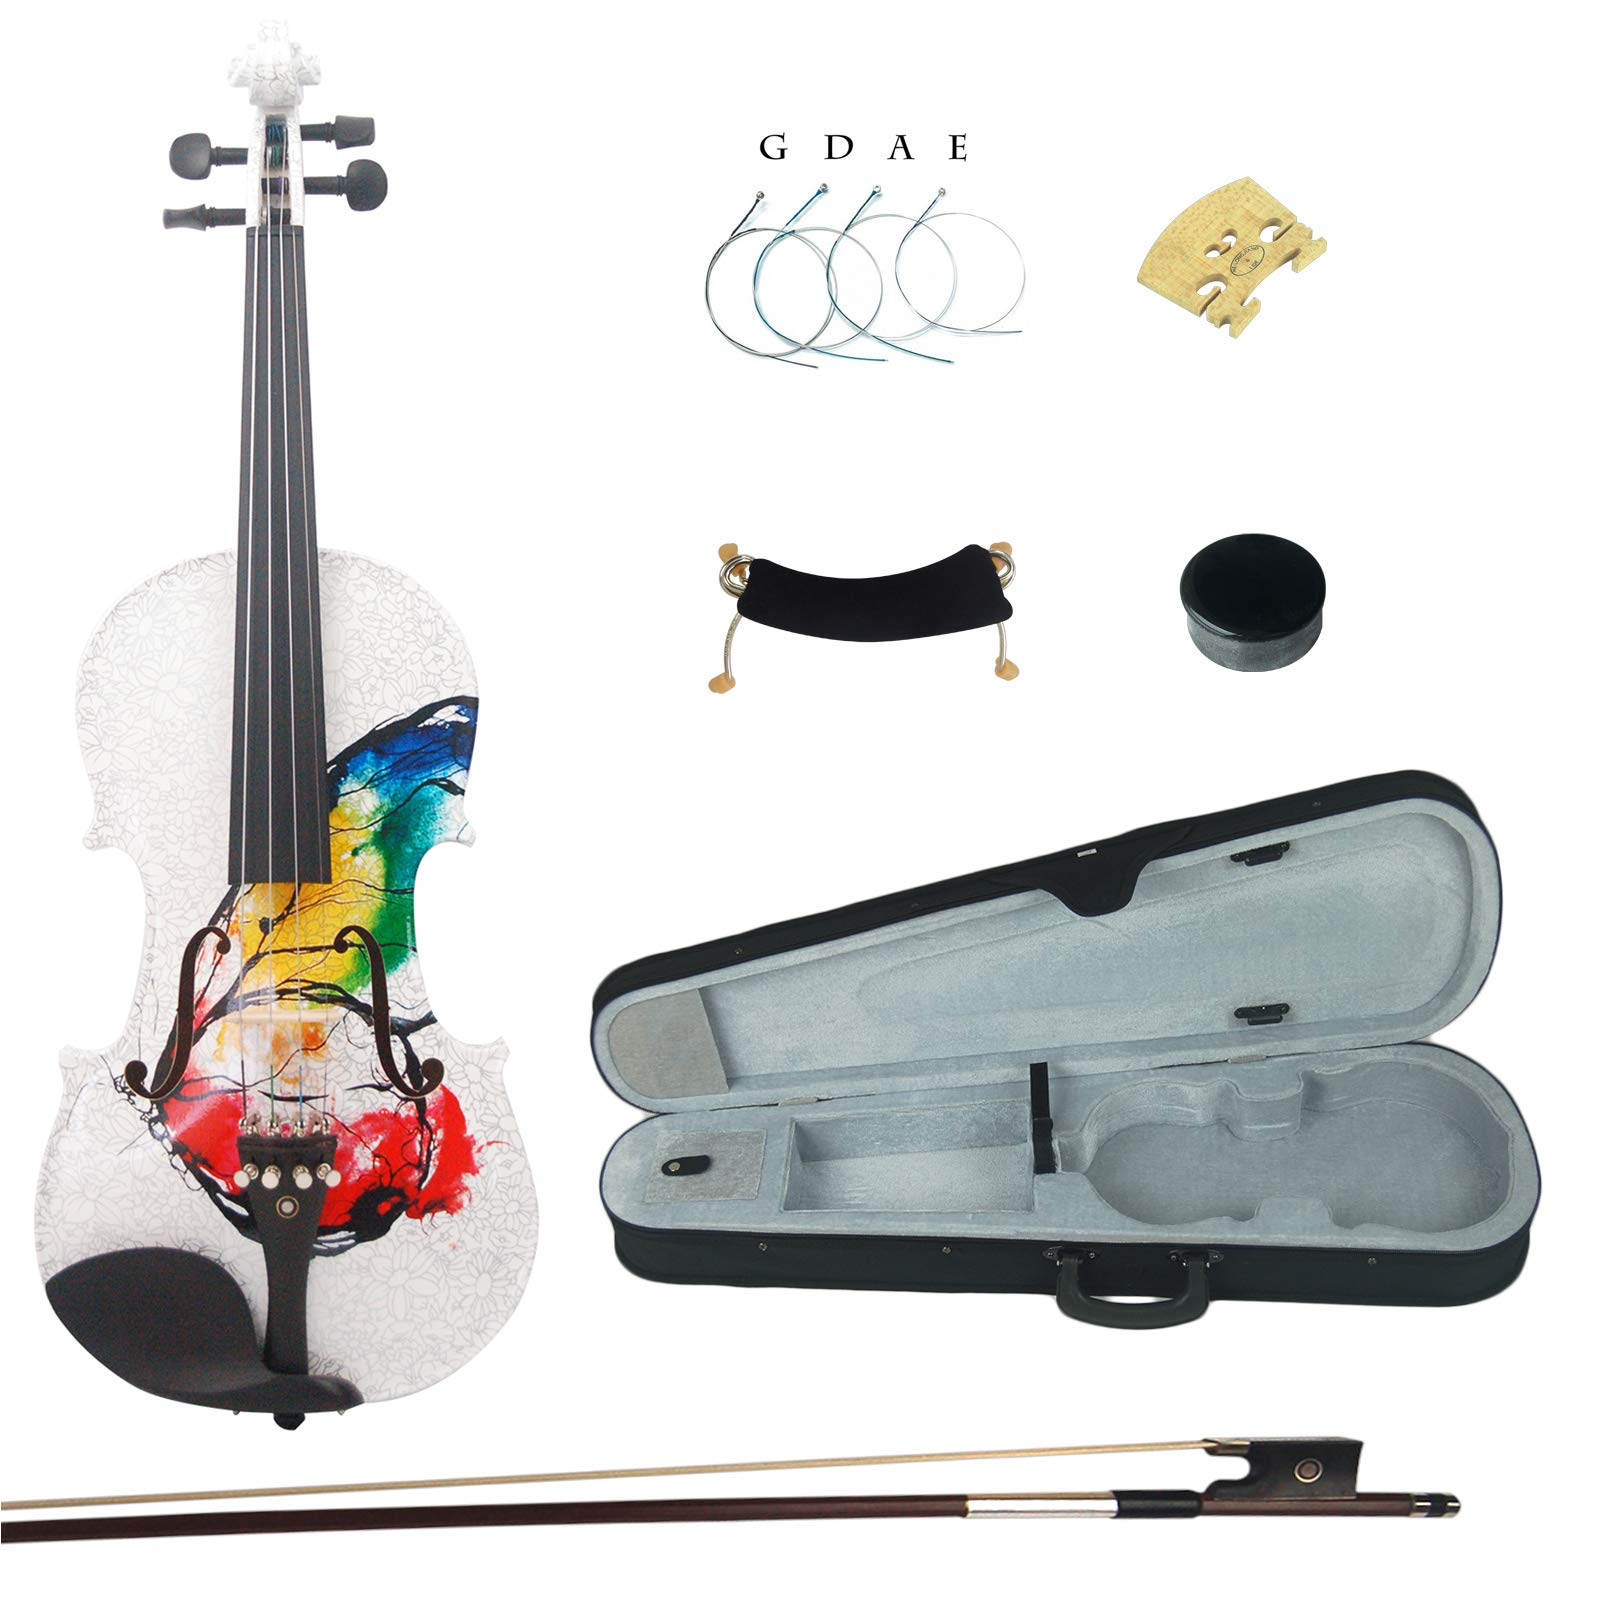 Kinglos 4/4 Butterfly Flower Colored Ebony Fitted Solid Wood Violin Kit with Case, Shoulder Rest, Bow, Rosin, Extra Bridge and Strings Full Size (NHS3002) by Kinglos